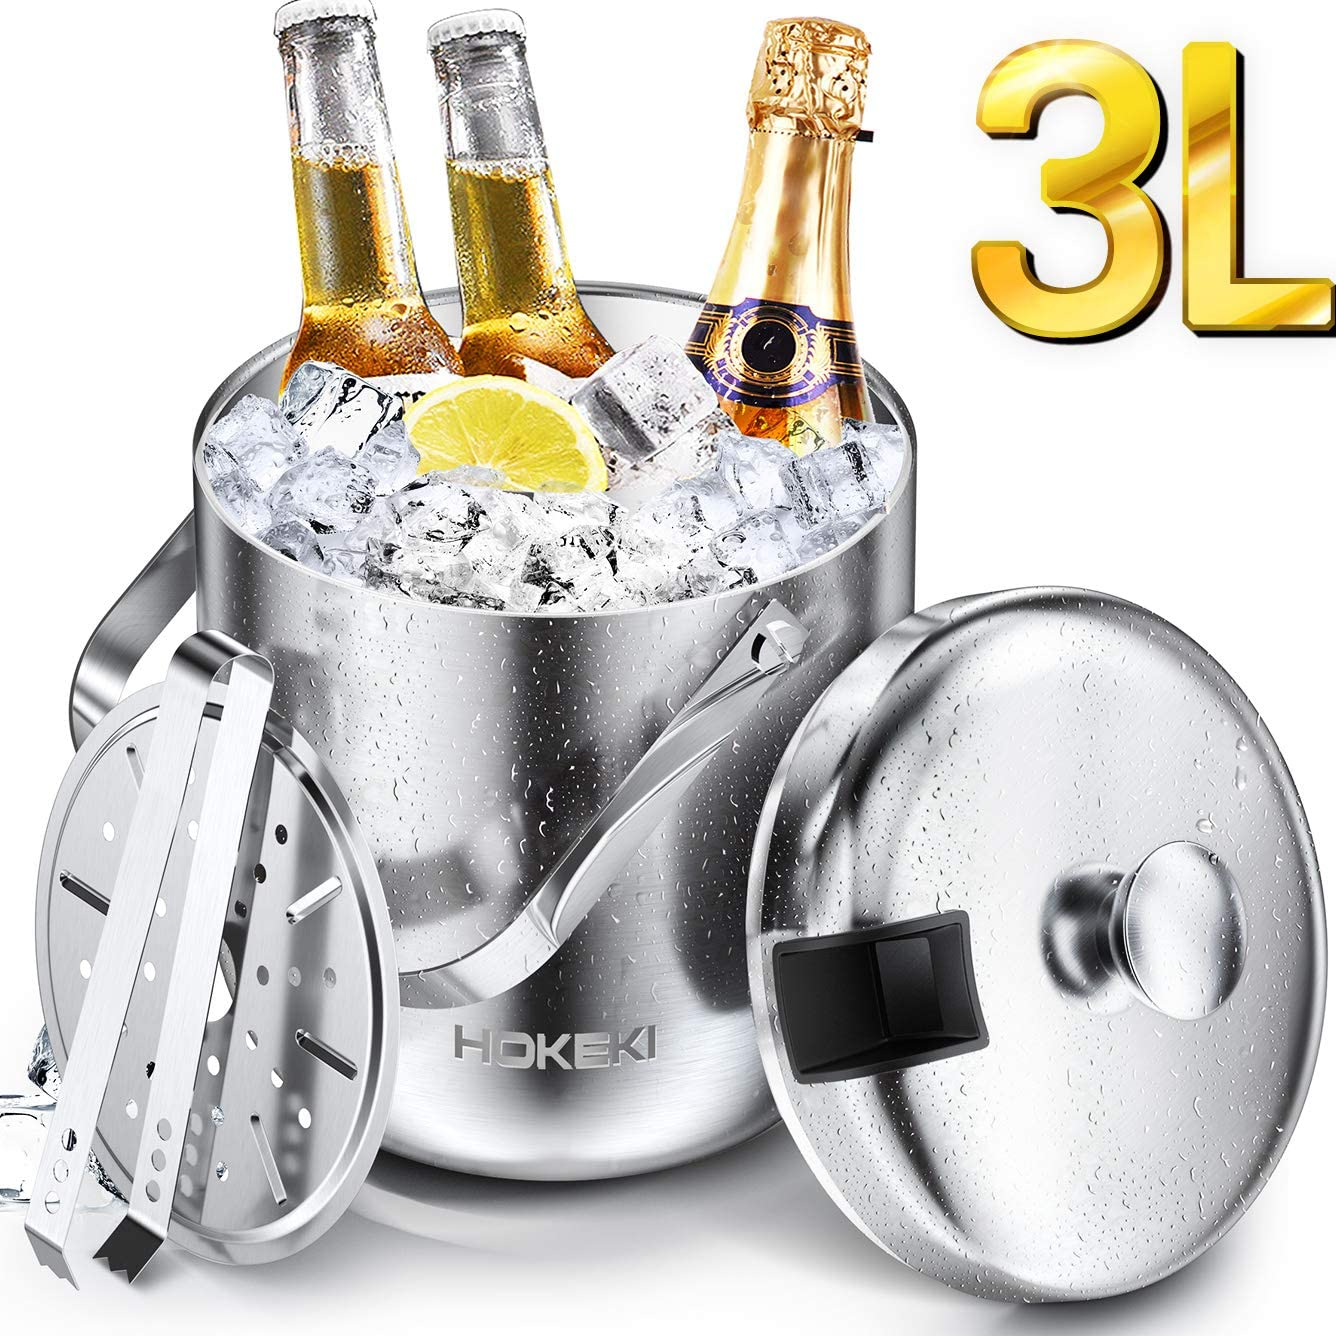 Ice Bucket, HOKEKI Stainless Steel Insulated Double Wall Bar Ice Bucket Set, Included Lid, Tongs and Strainer Keeps Ice Cold & Dry, Great for Home Bar, Chilling Beer, Champagne and wine (Silver)